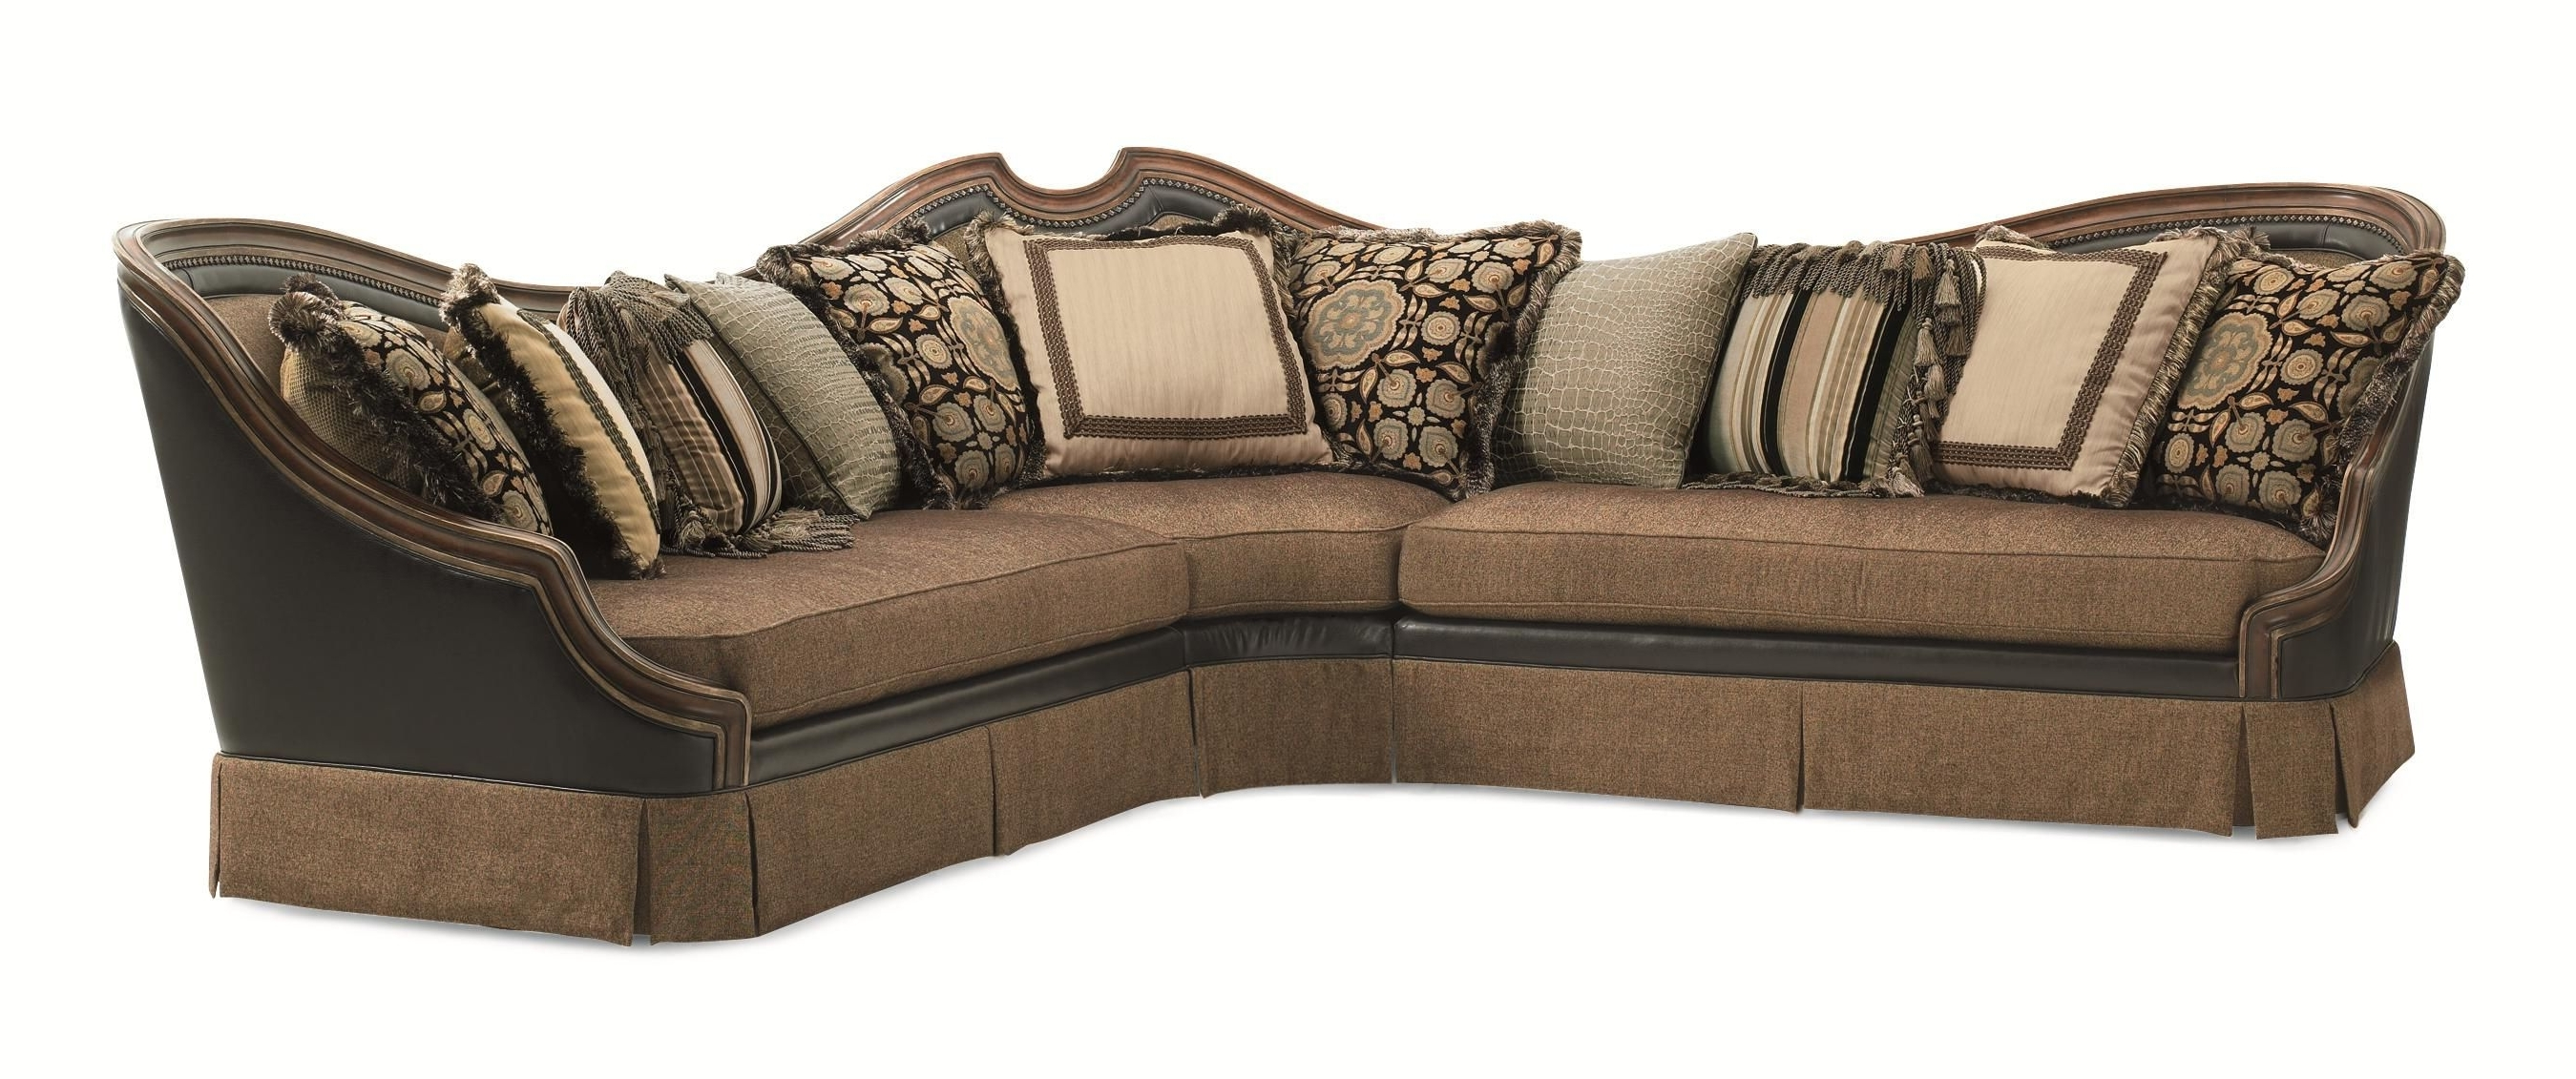 Showing Photos Of Nebraska Furniture Mart Sectional Sofas View 3 Of